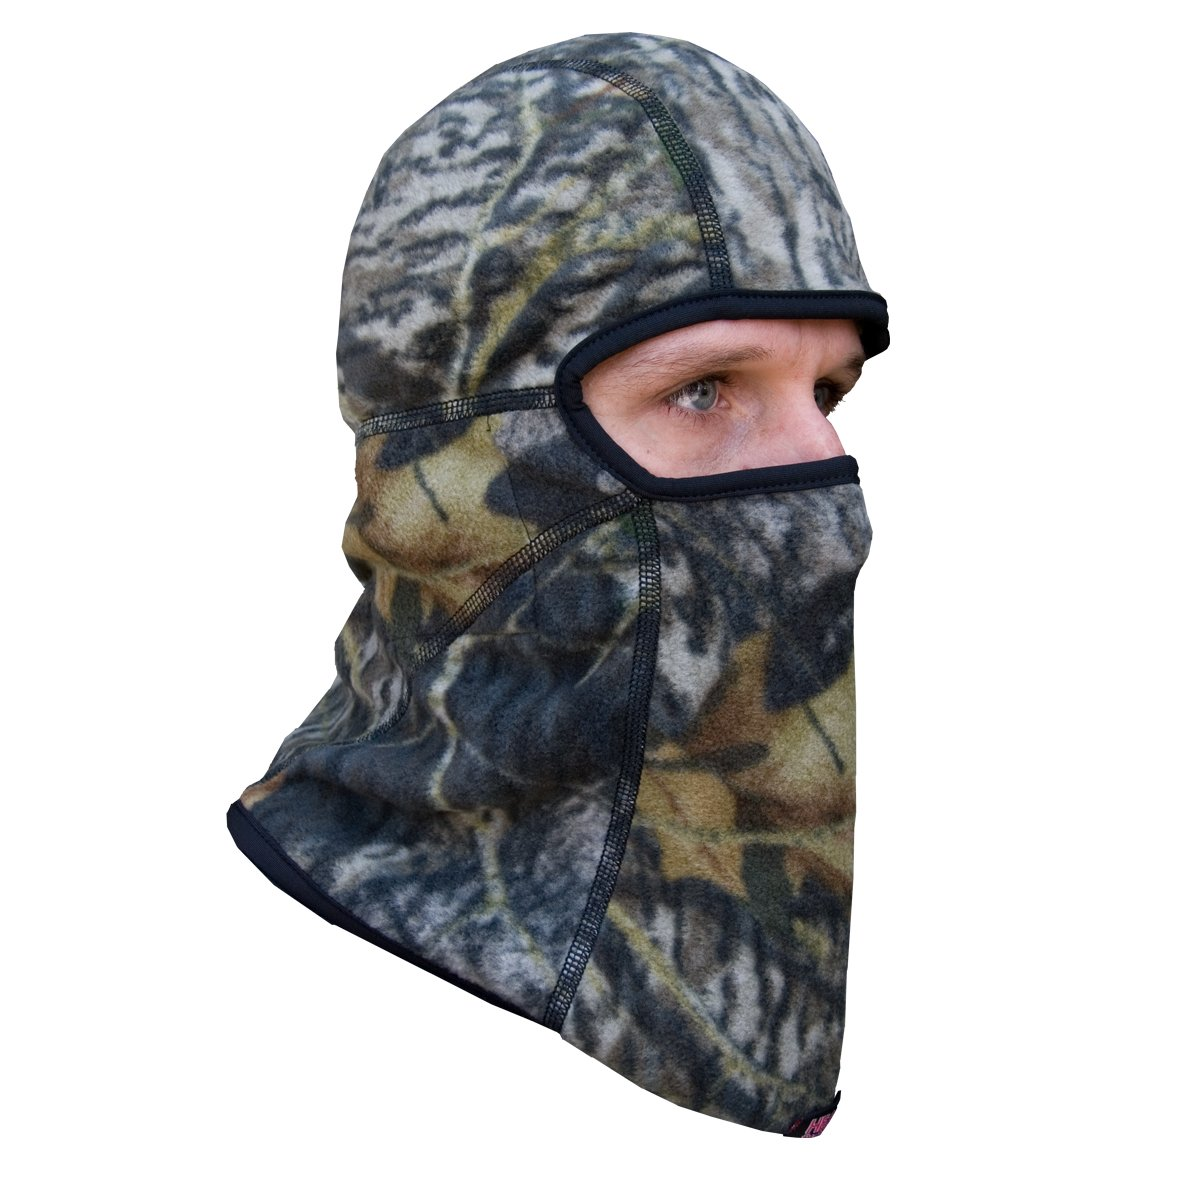 Heat Factory Deluxe Fleece Balaclava Face Mask with 5 Hand Heat Warmer Pockets, Mossy Oak